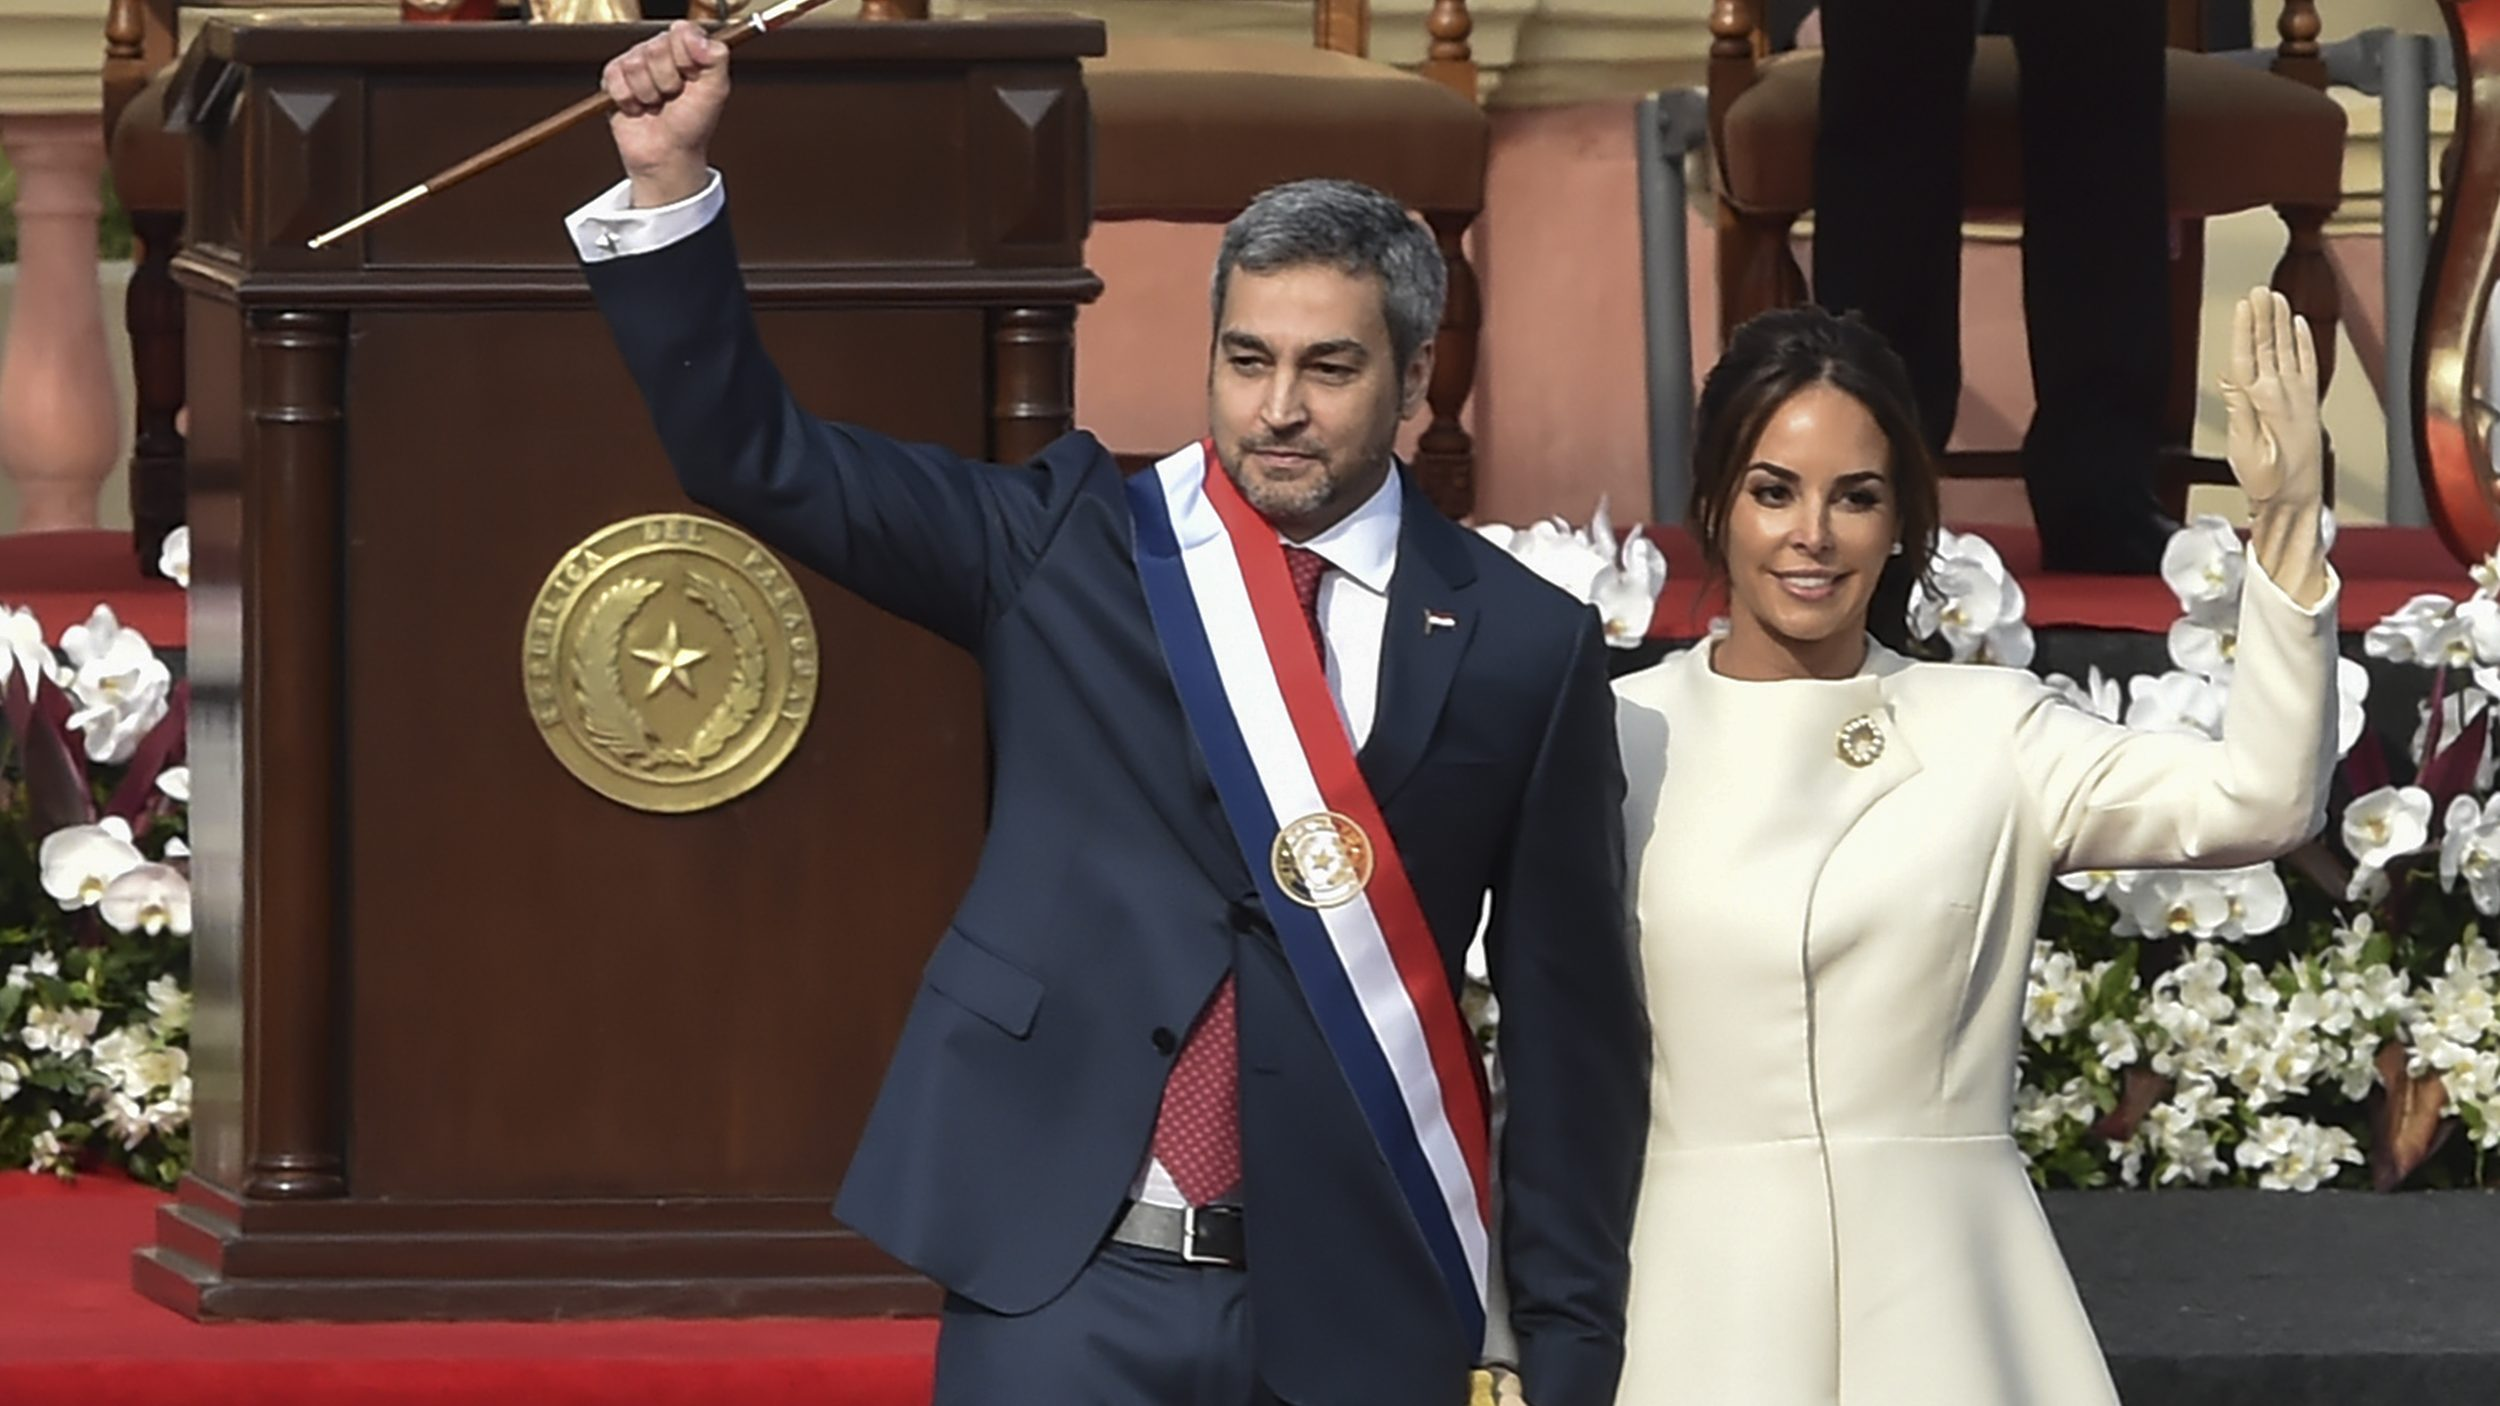 Paraguay's President Mario Abdo Benitez, left, walks next to his wife Silvana Lopez Moreira during his inauguration ceremony in Asuncion on Aug. 15, 2018.(Norberto Duarte / AFP / Getty Images)